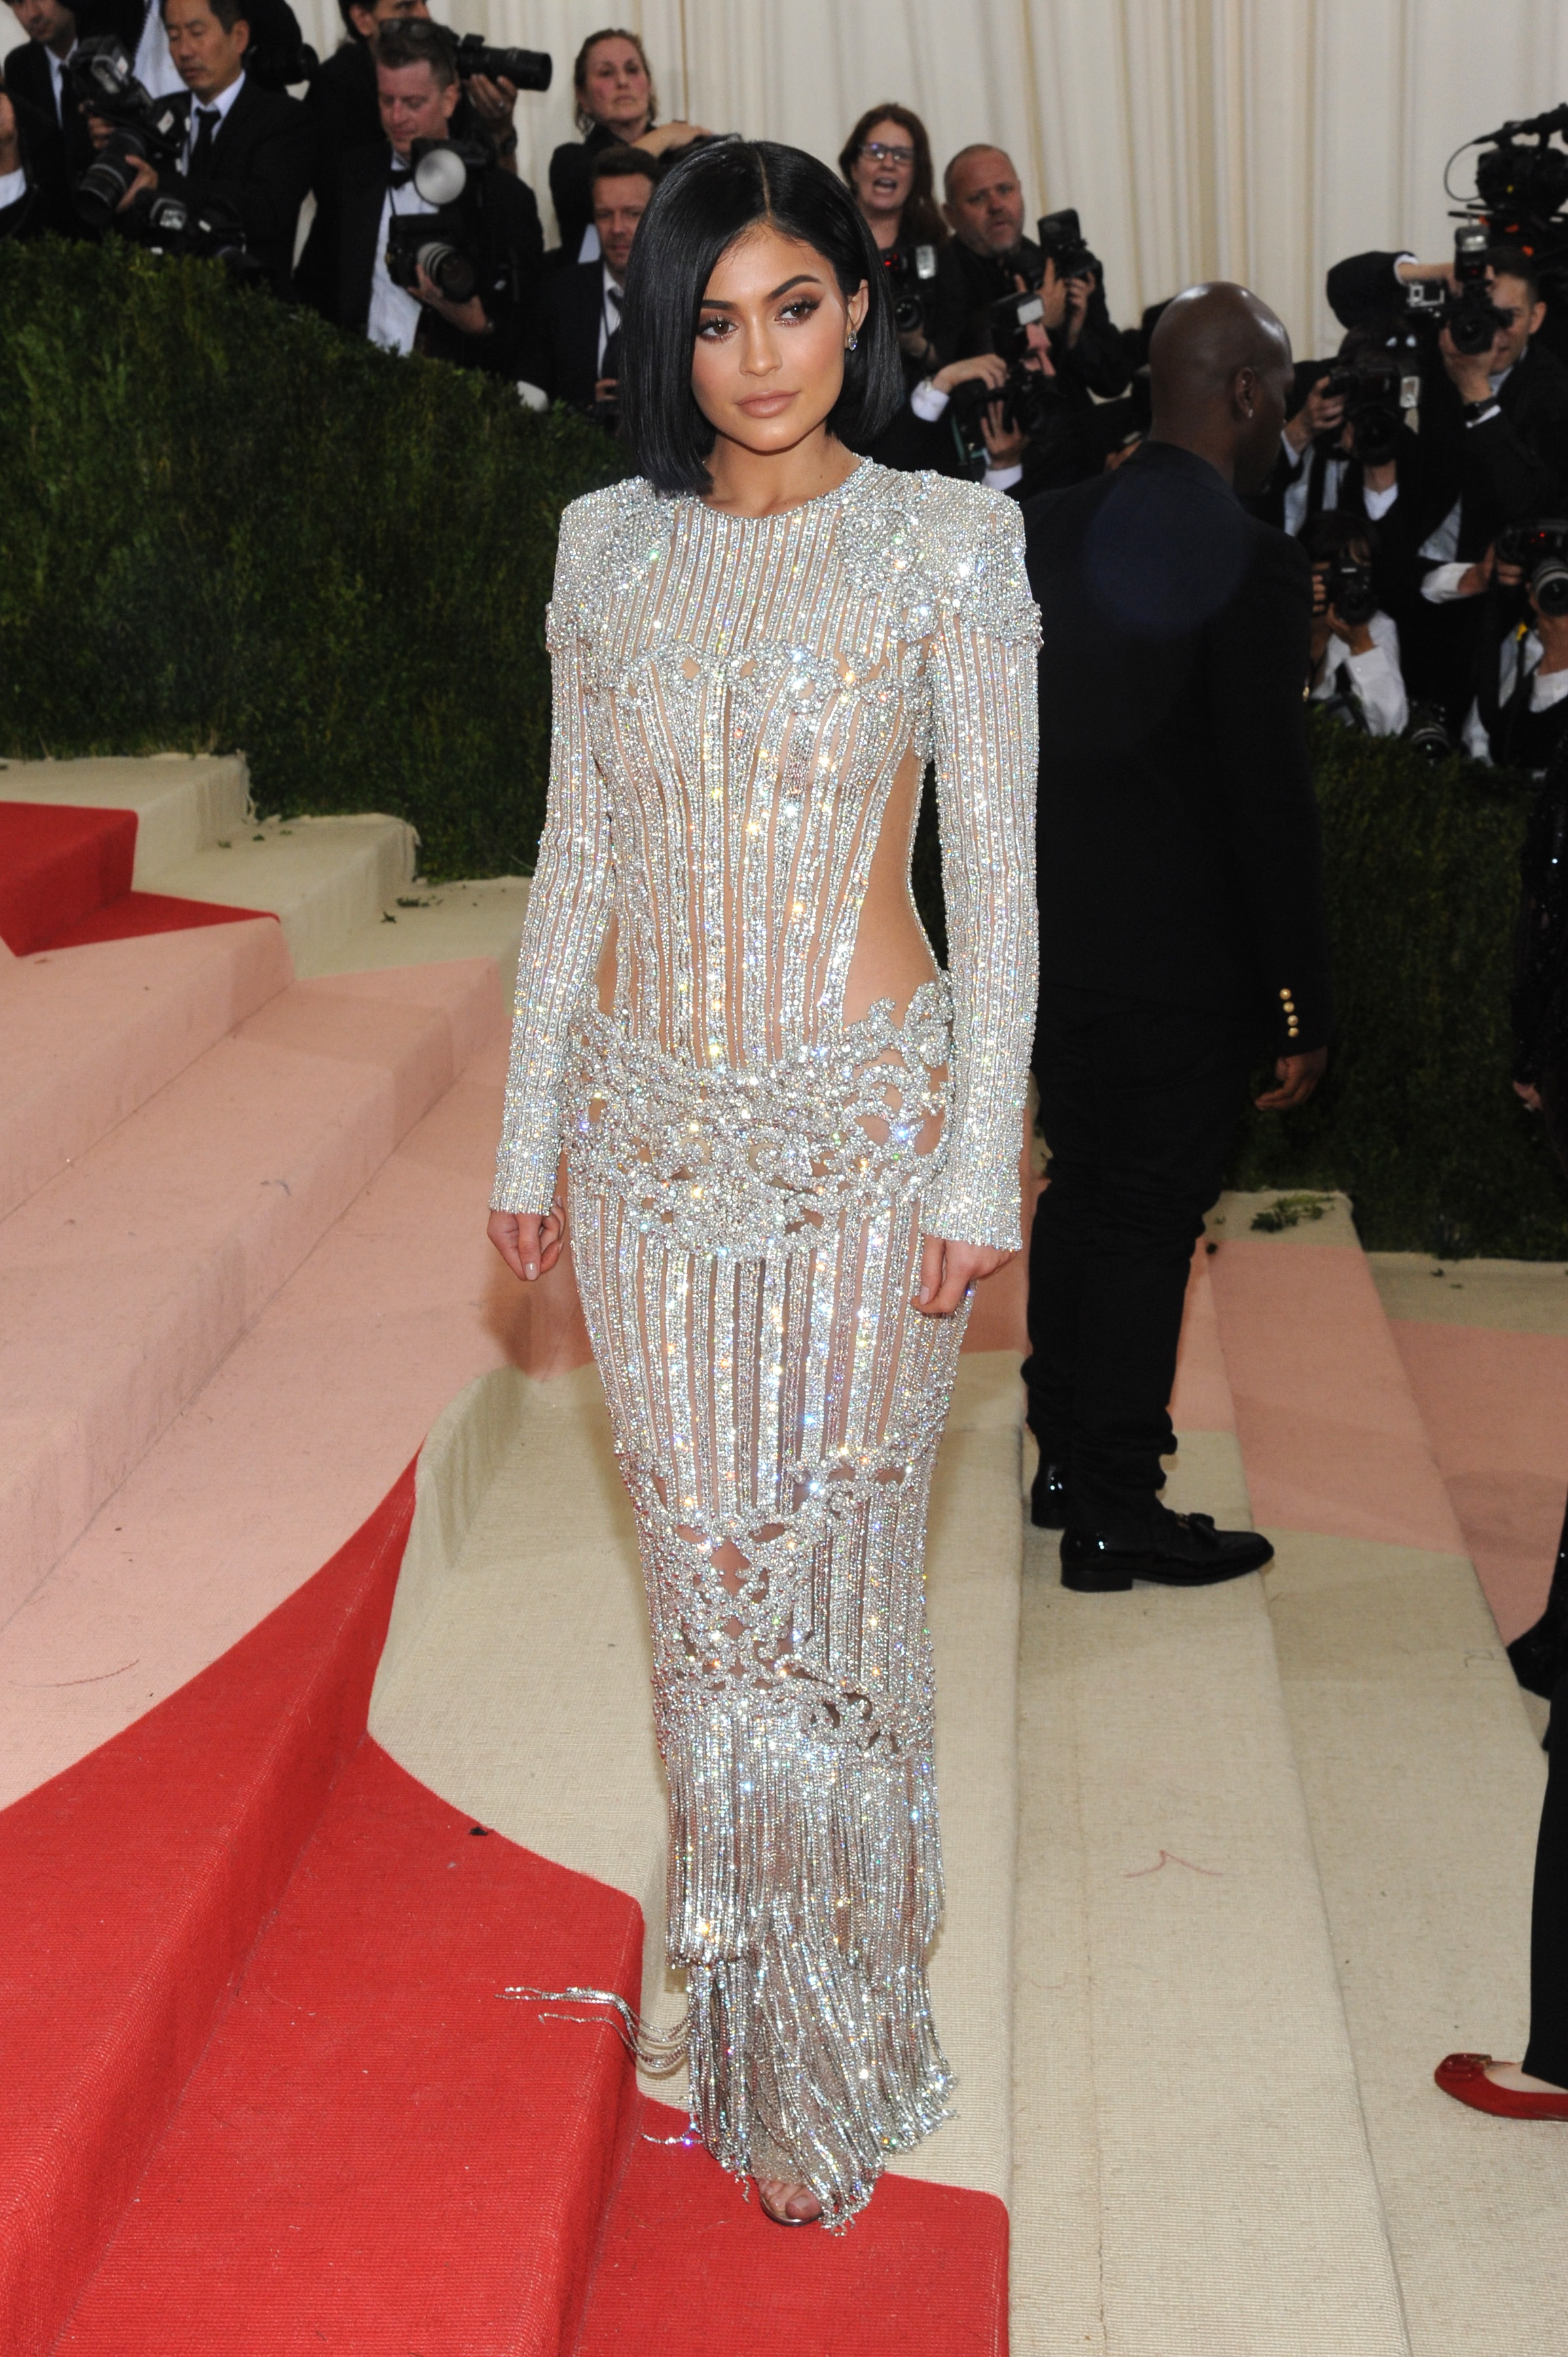 2236d7e5f3 Kylie Jenner made her Met Gala debut at the 2016 red carpet wearing a  beaded silver